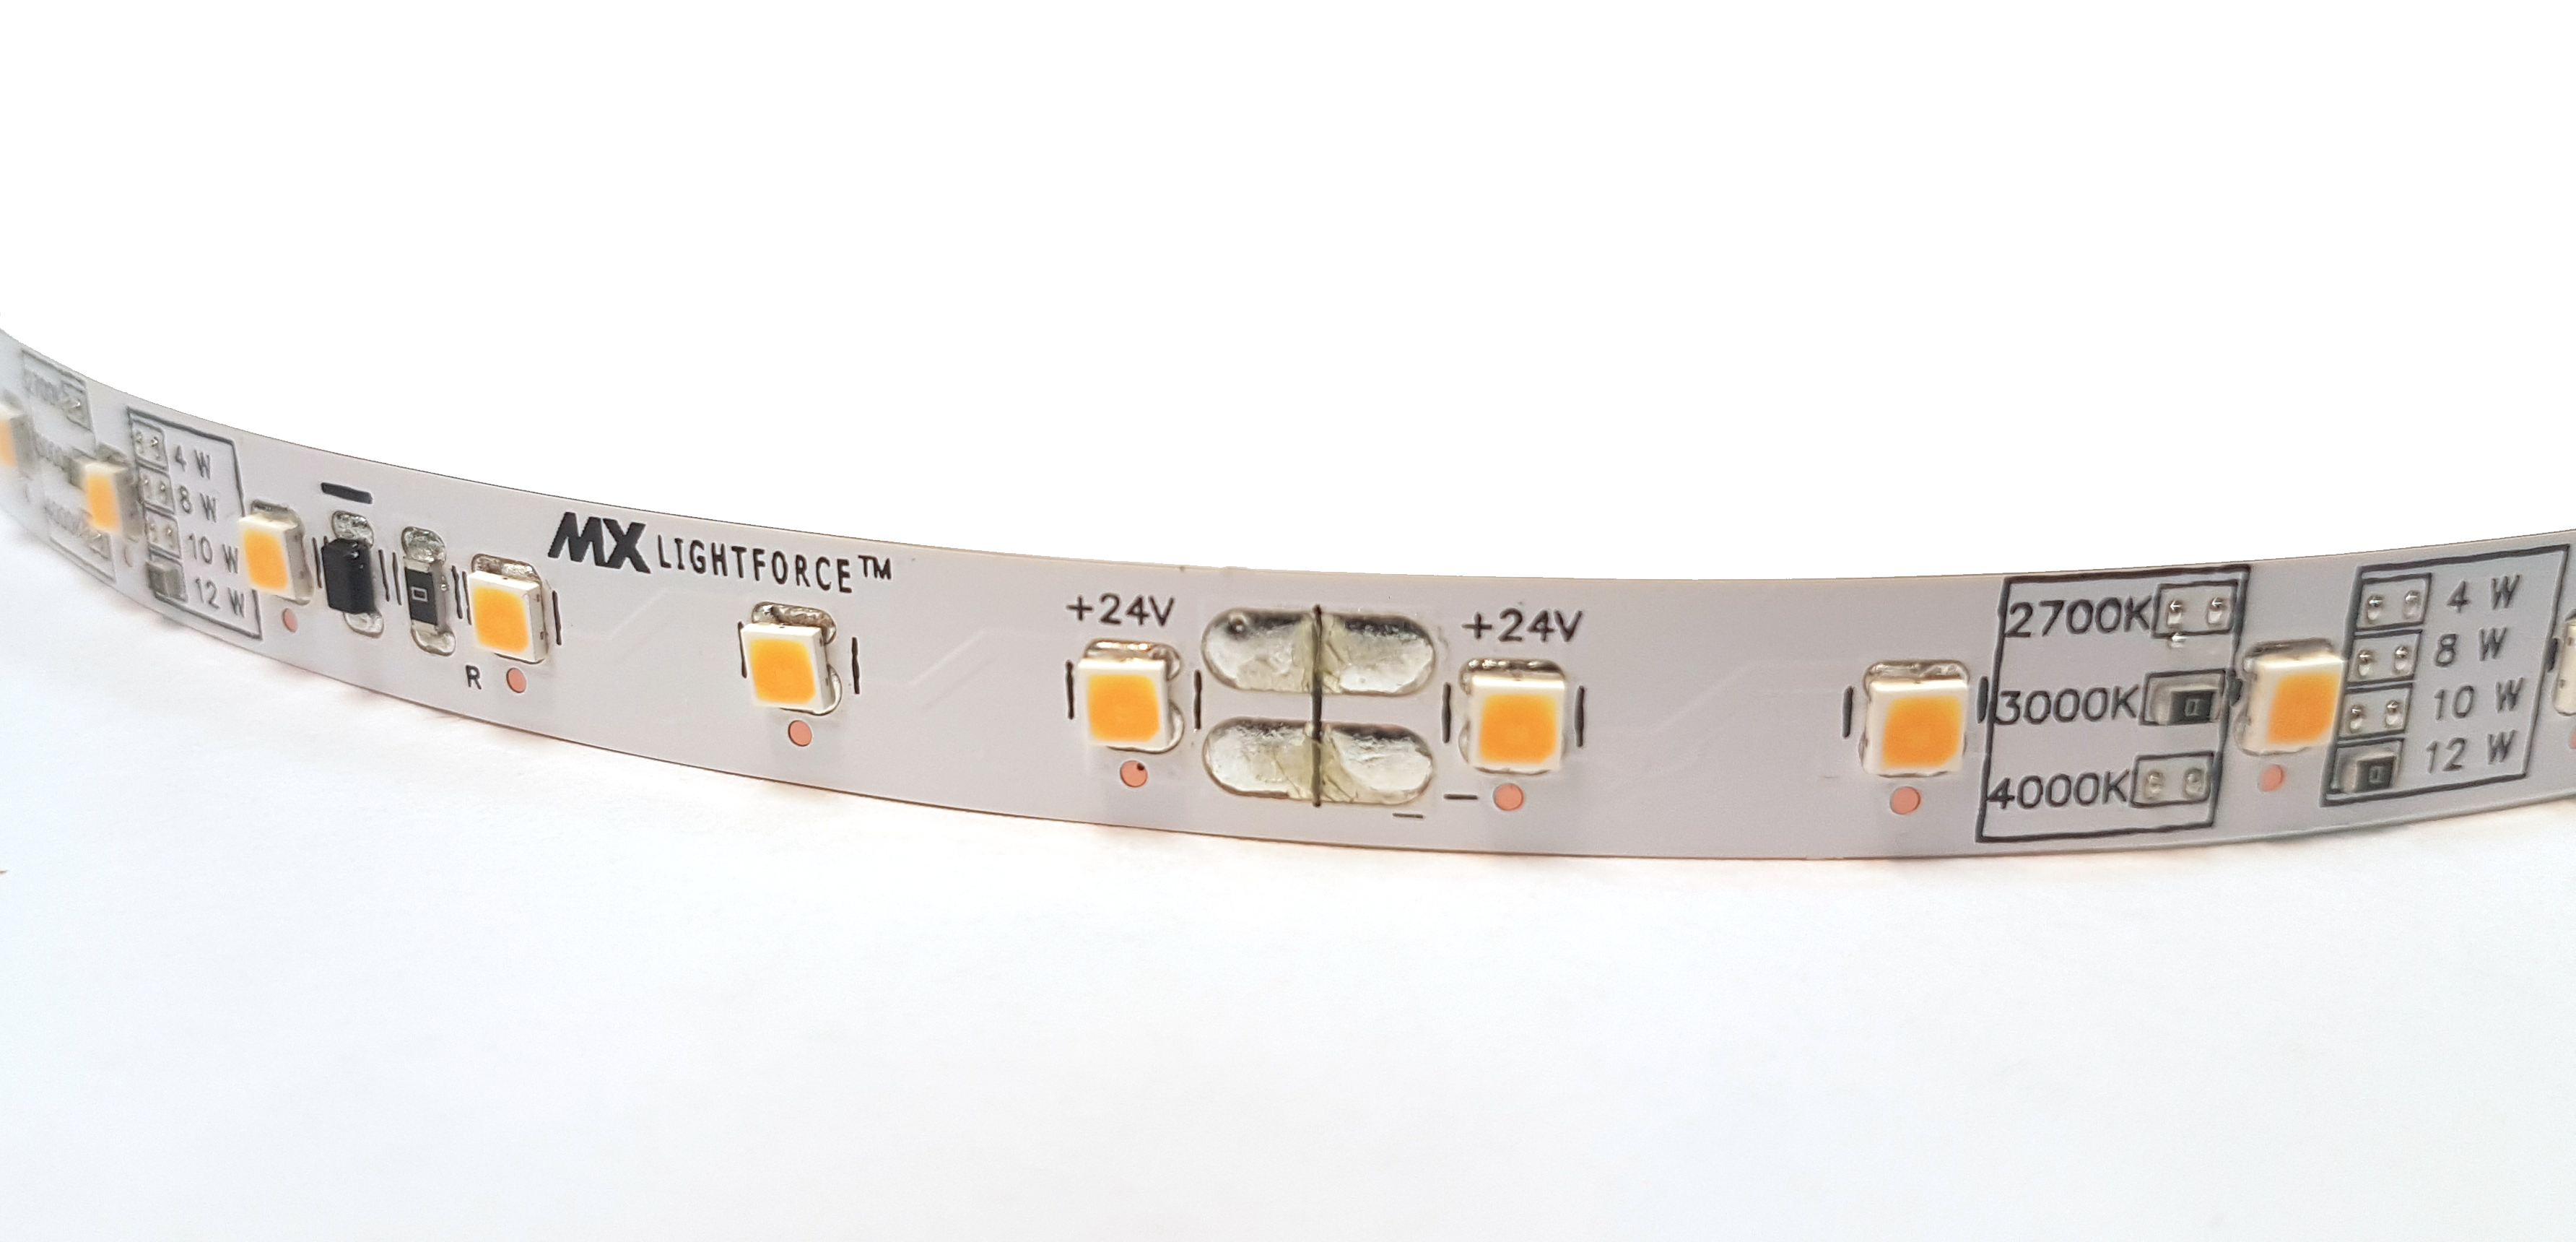 Led strip lights cost mx lightforce low voltage lighting why flexible led light strips will change the way architects view lighting led strip lights cost aloadofball Gallery